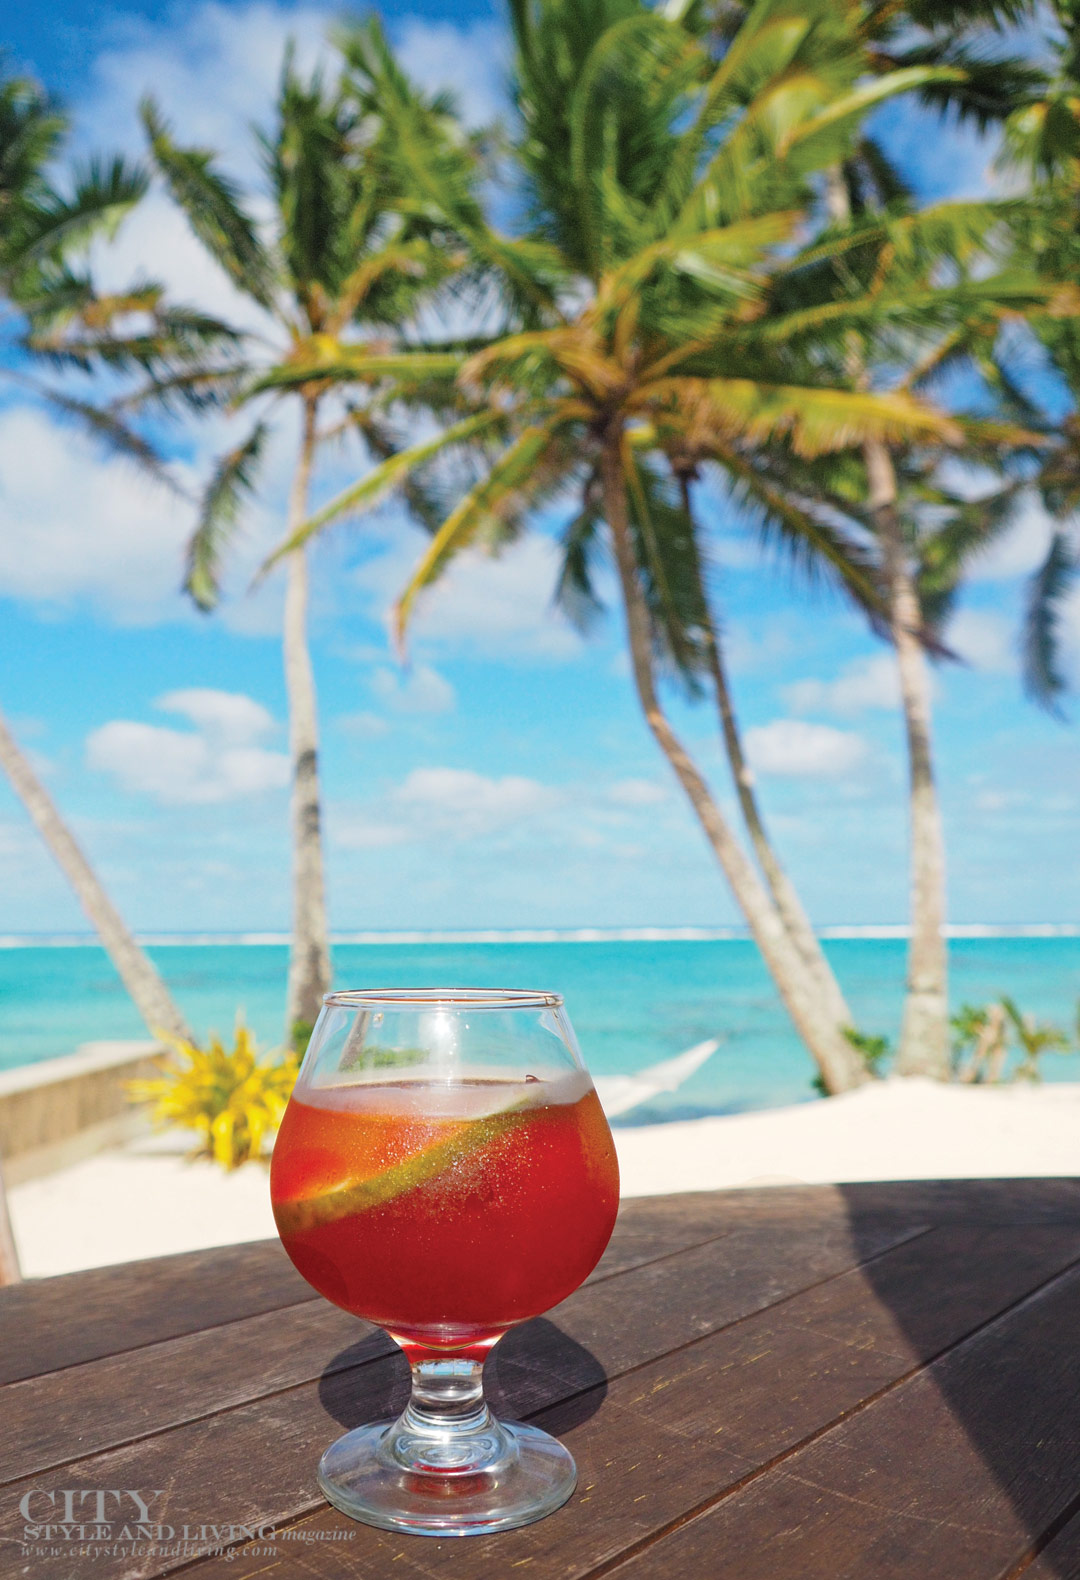 City Style and Living Magazine Fall 2018 Healthy While Travelling Drink at Little Polynesian